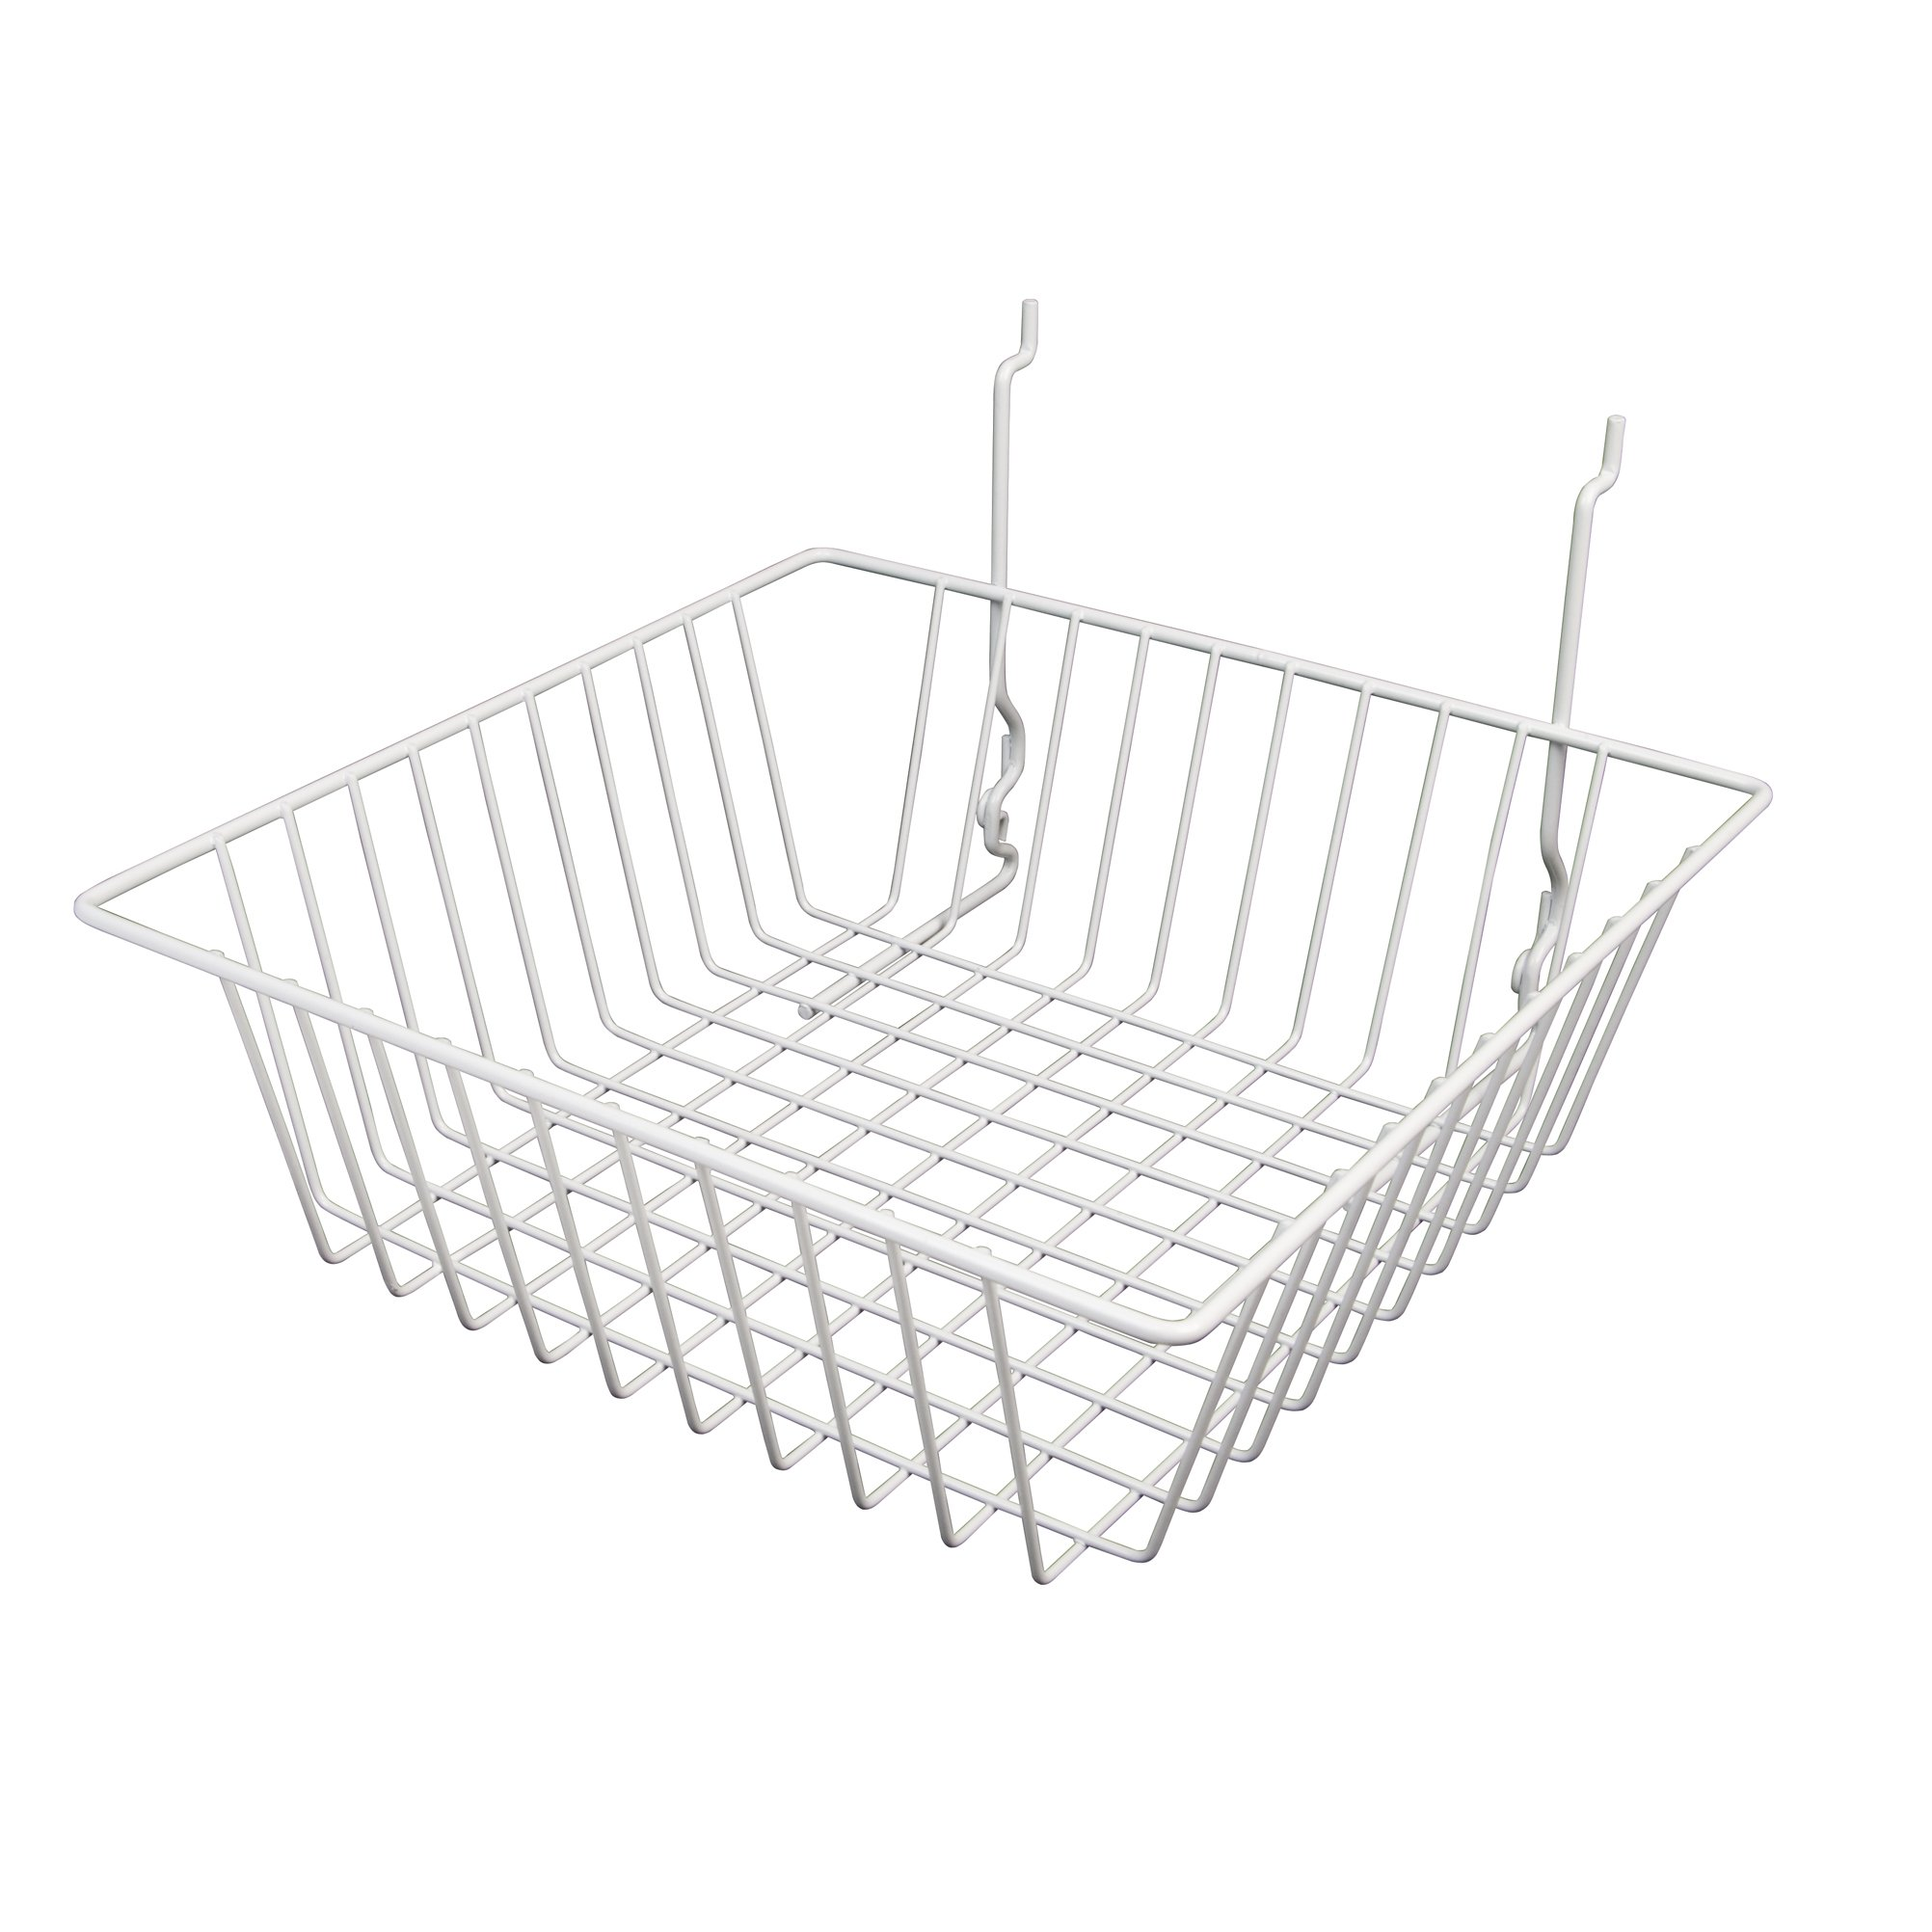 Only Garment Racks #5612WHITE (Pack of 6) White Wire Baskets for Grid wall, Slat wall or Pegboard - Merchandiser Baskets, White Wire Basket 12'' L x 12'' D x 4'' H (Set of 6) (Pack of 6)